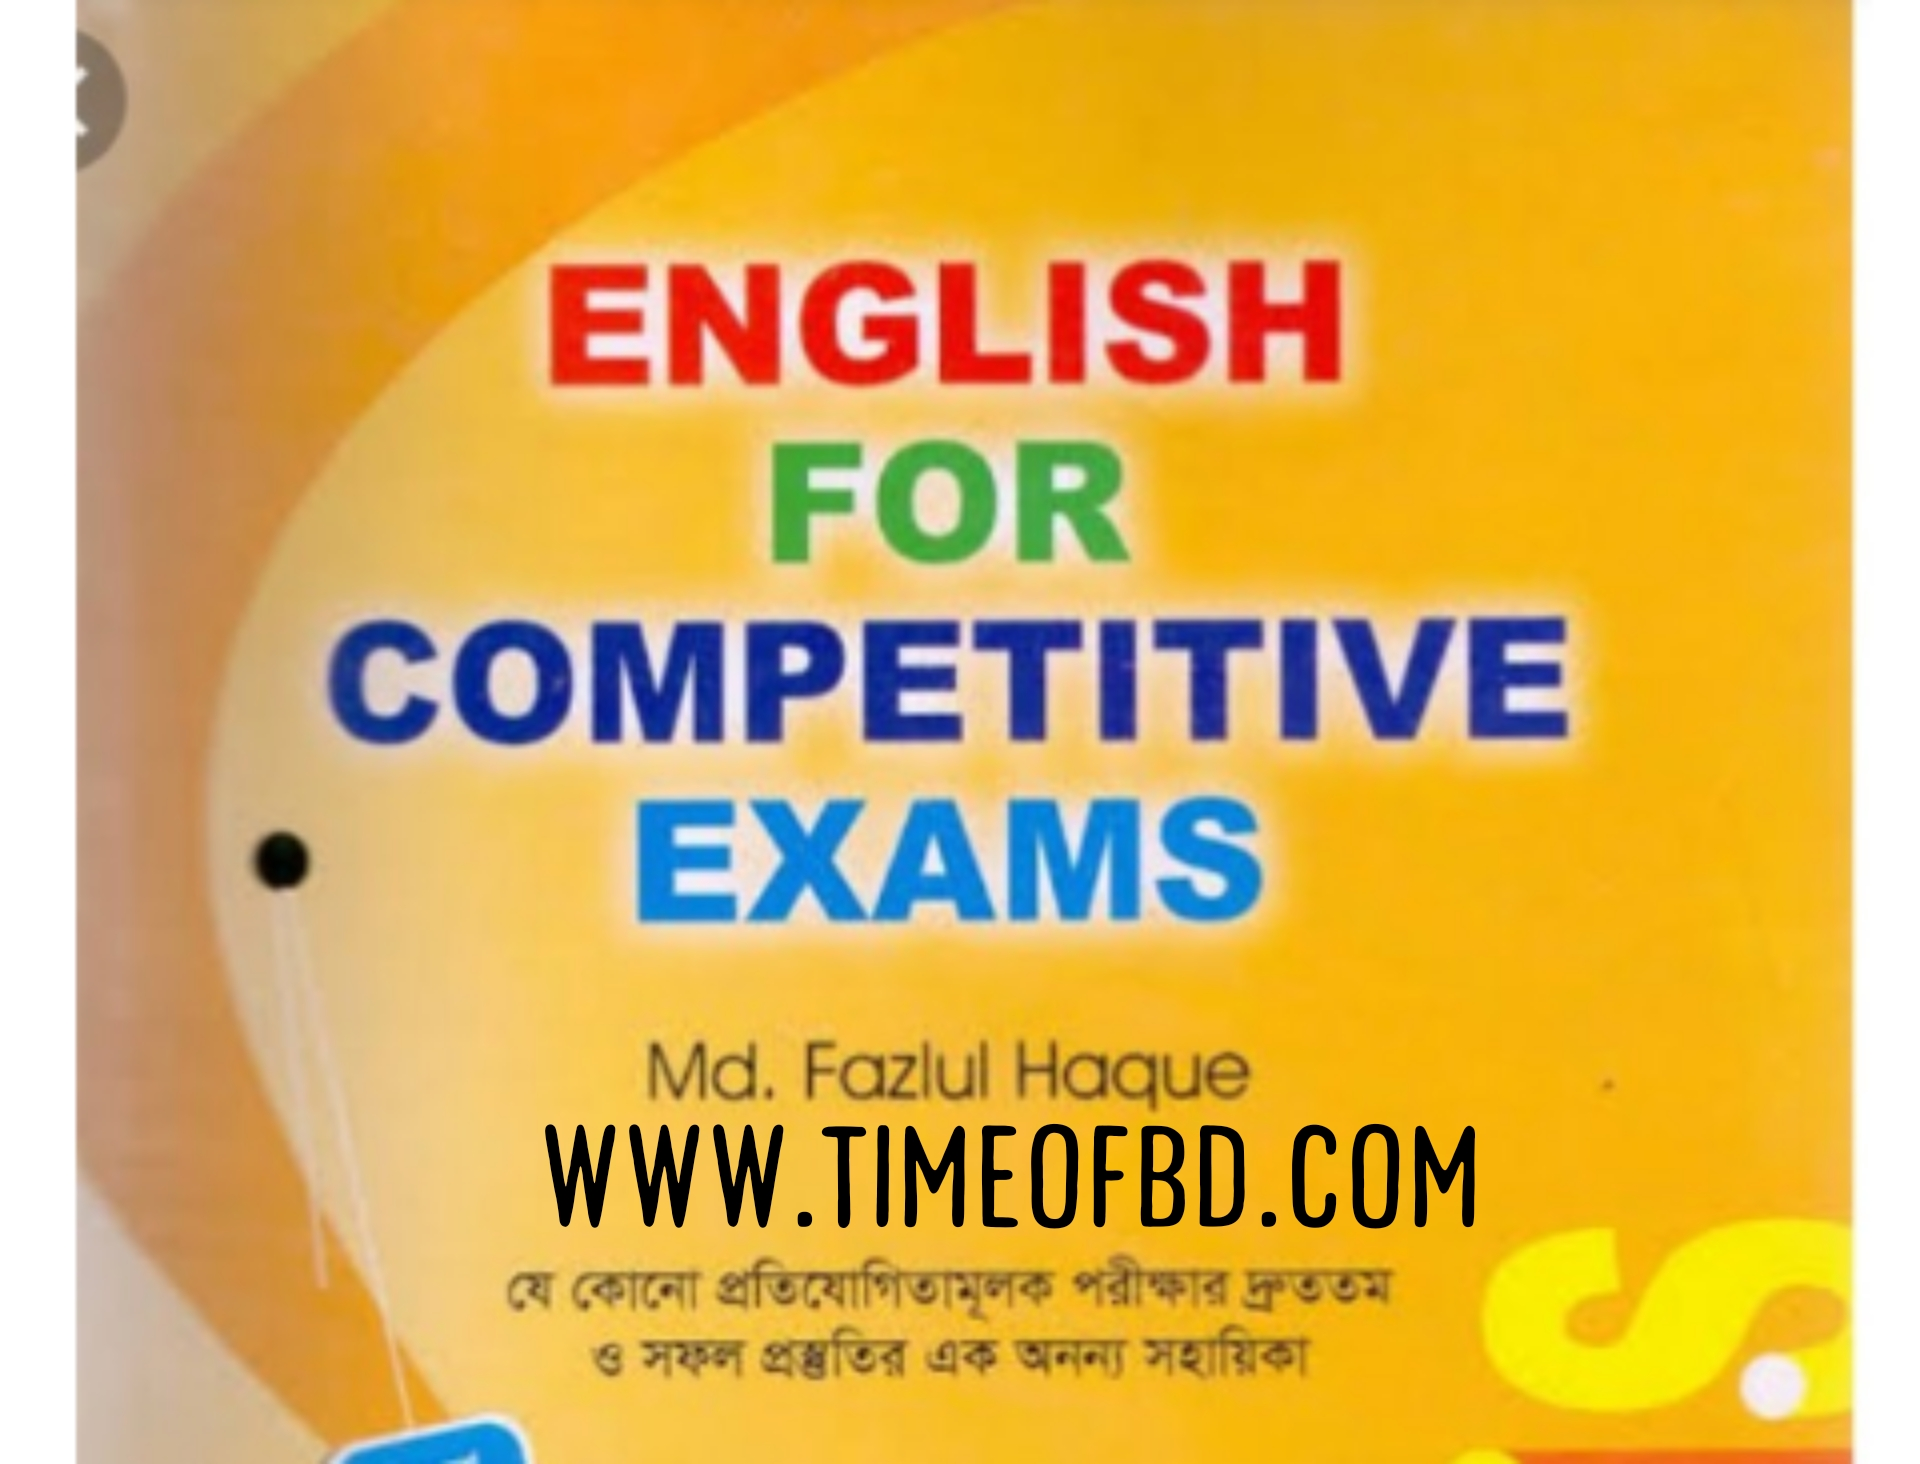 English for Competitive exam online order link,English for Competitive exam pdf,English for Competitive exam book price